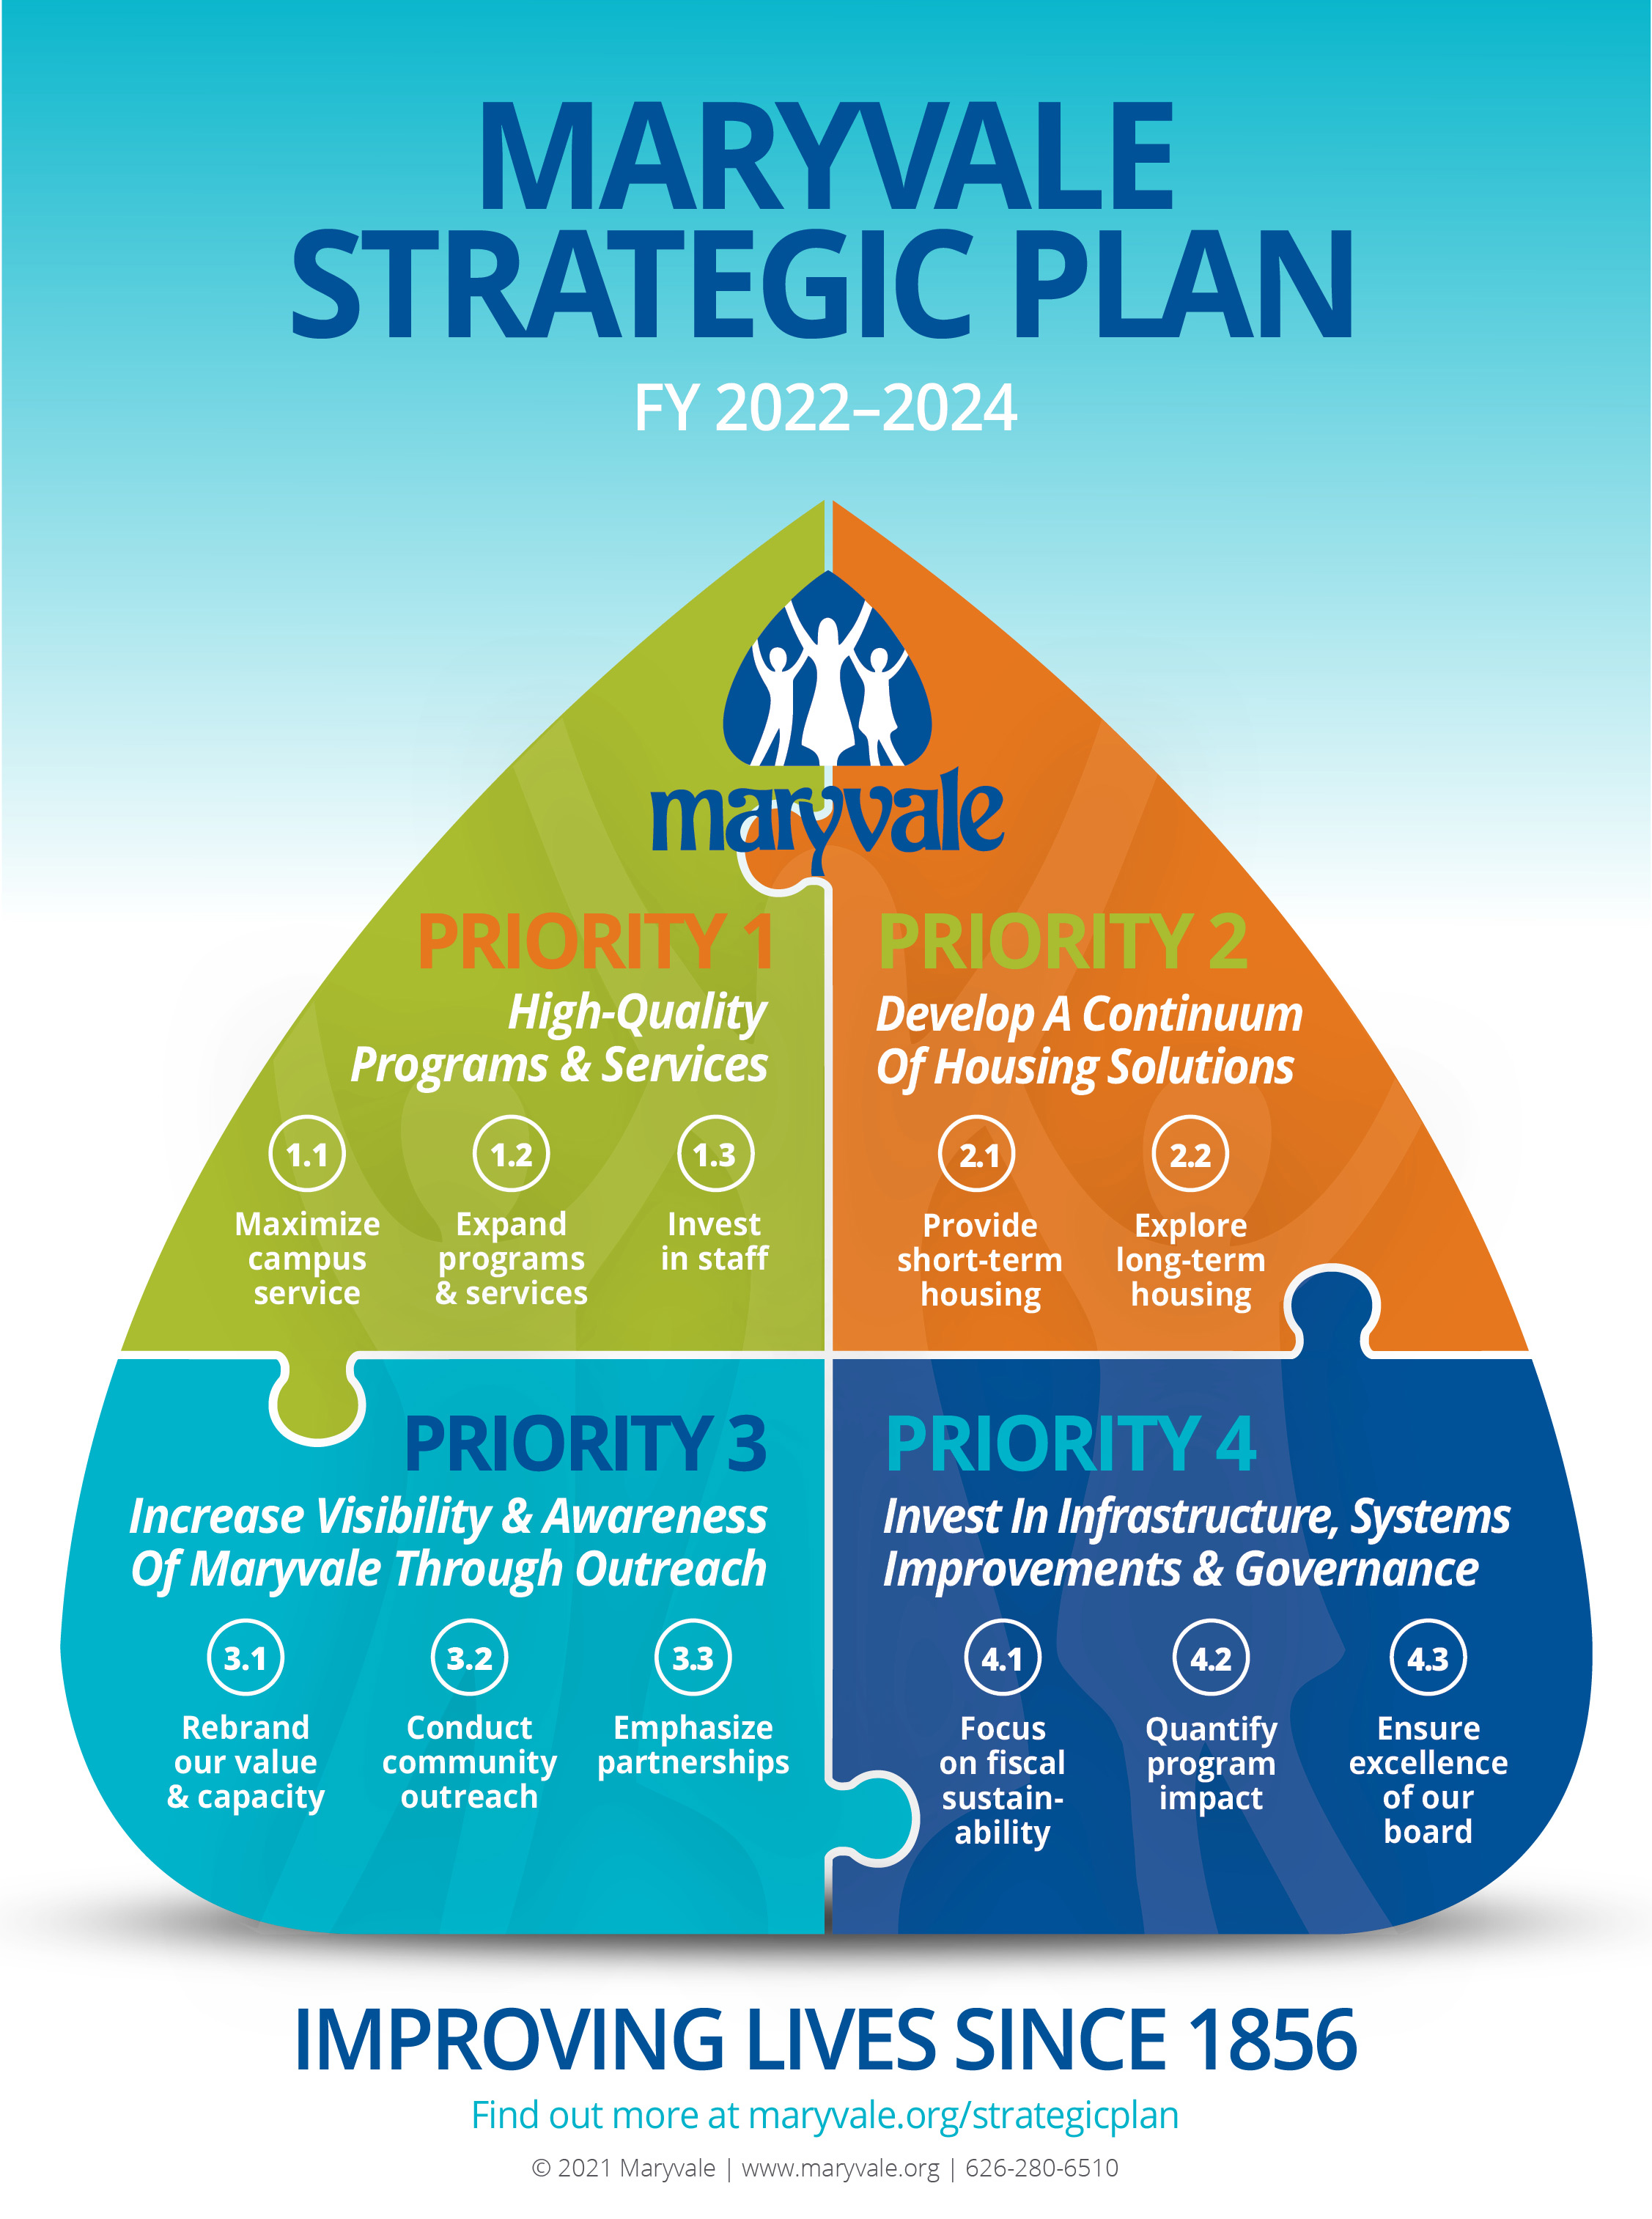 Maryvale Strategic Plan Infographic